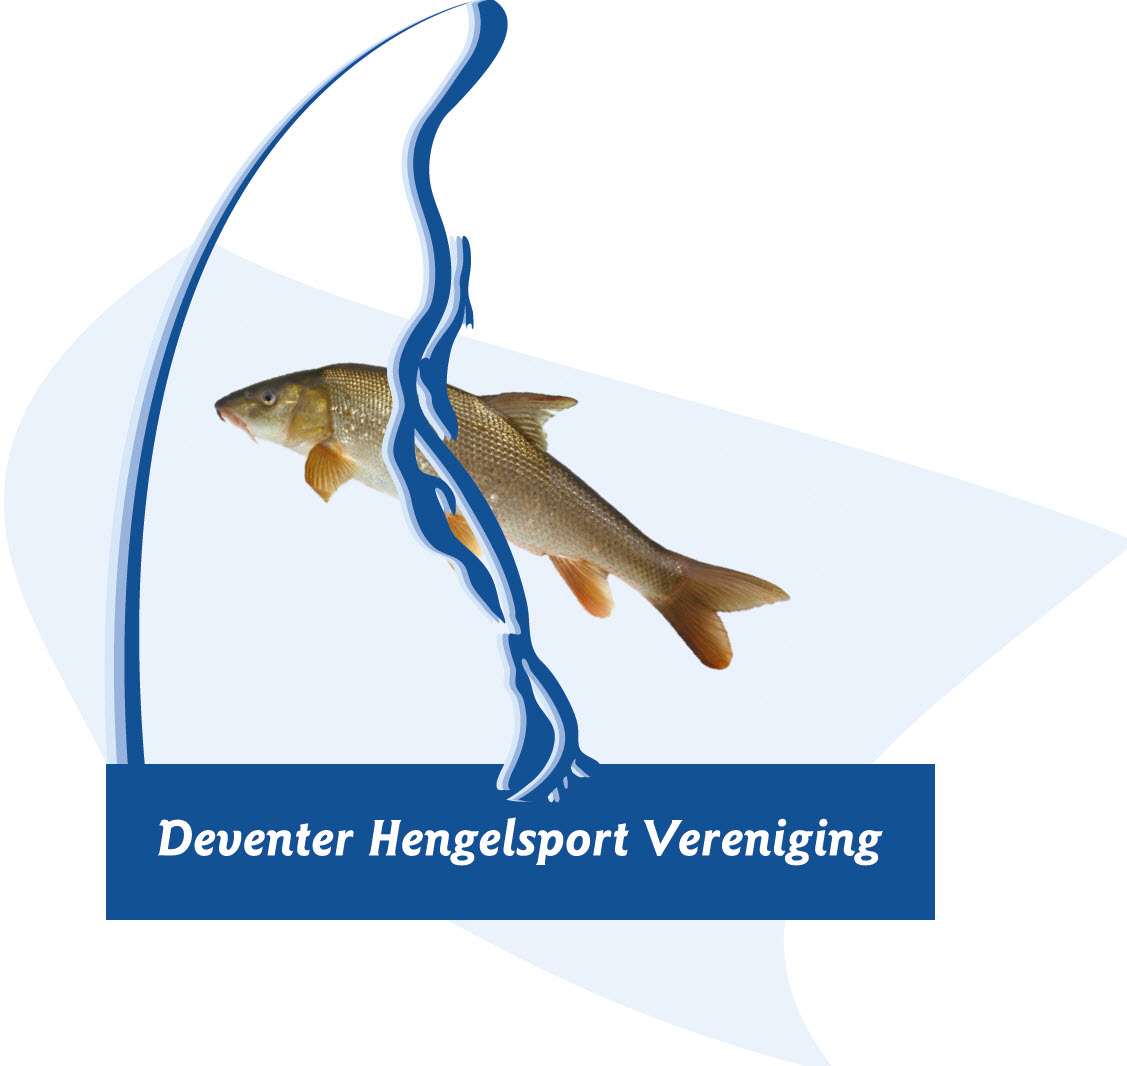 Deventer Hengelsport Vereniging